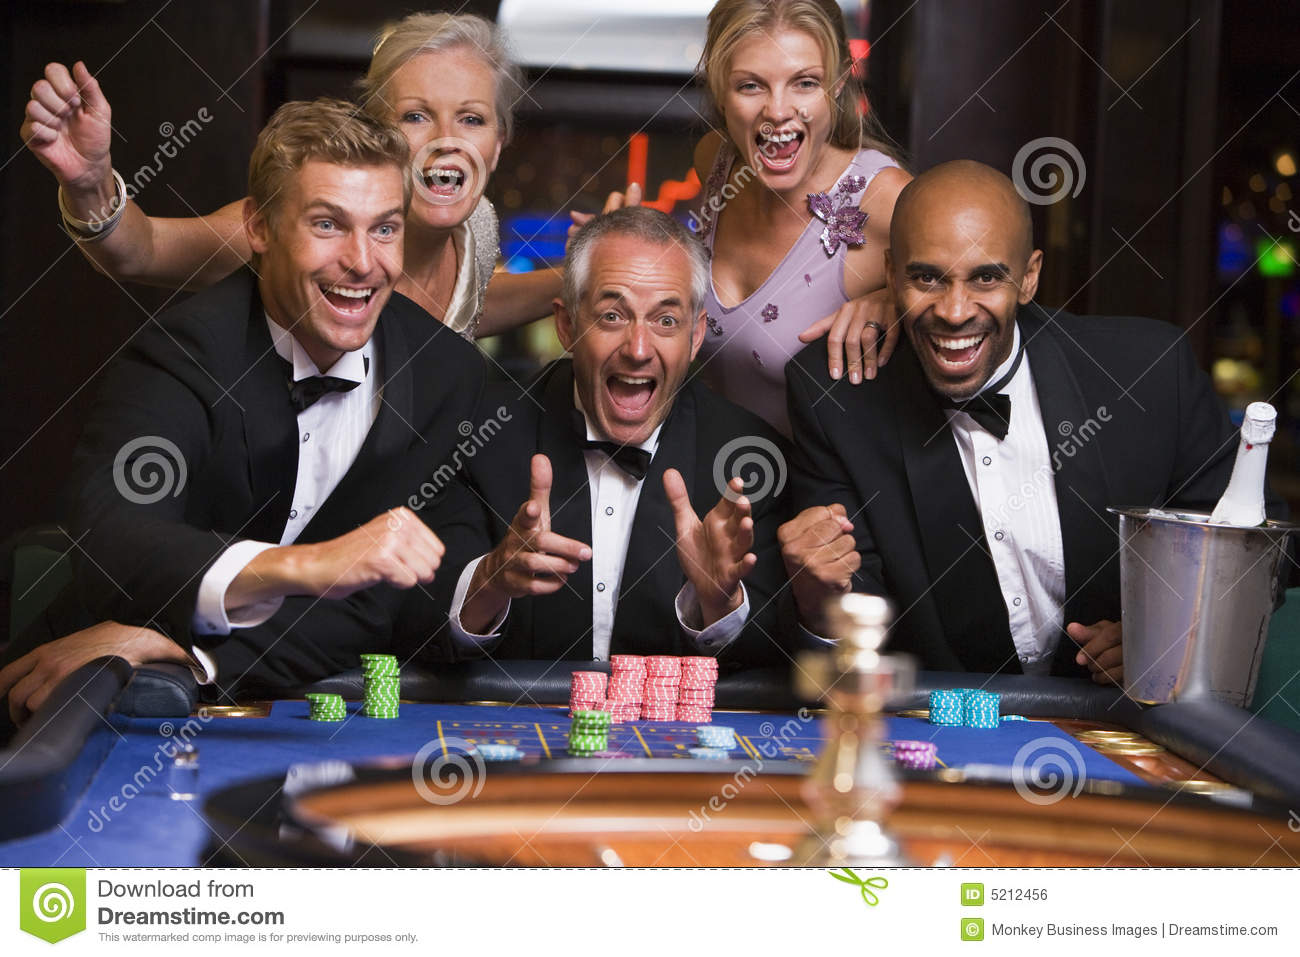 Playing roulette at home with friends